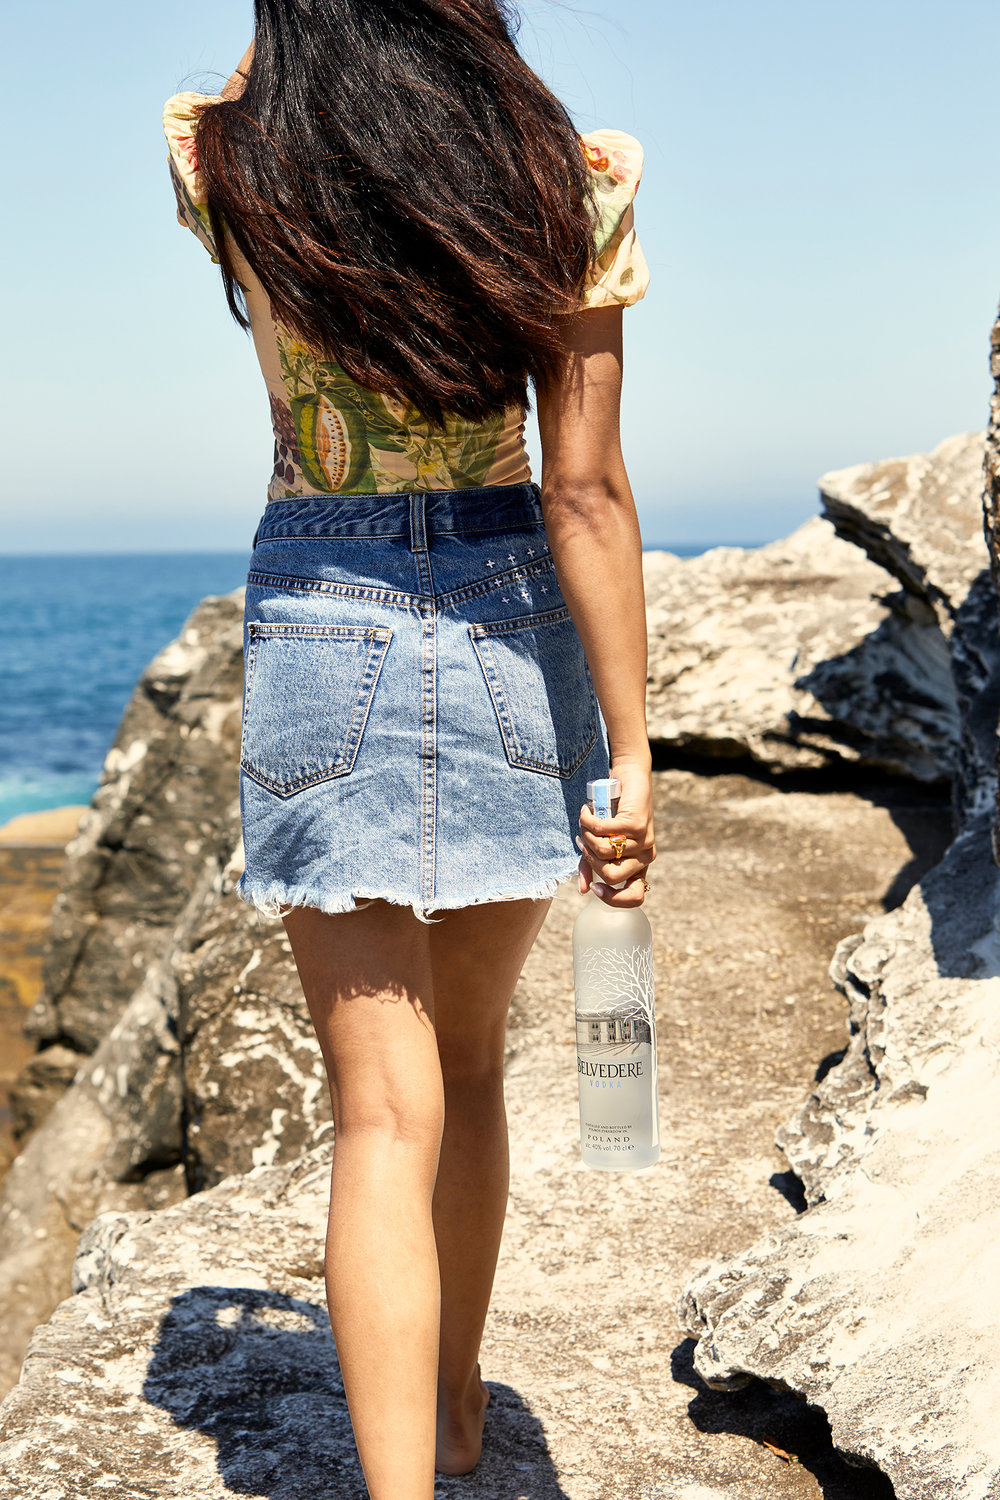 Belvedere Vodka shot by Sydney advertising food and lifestyle photographer Benito Martin